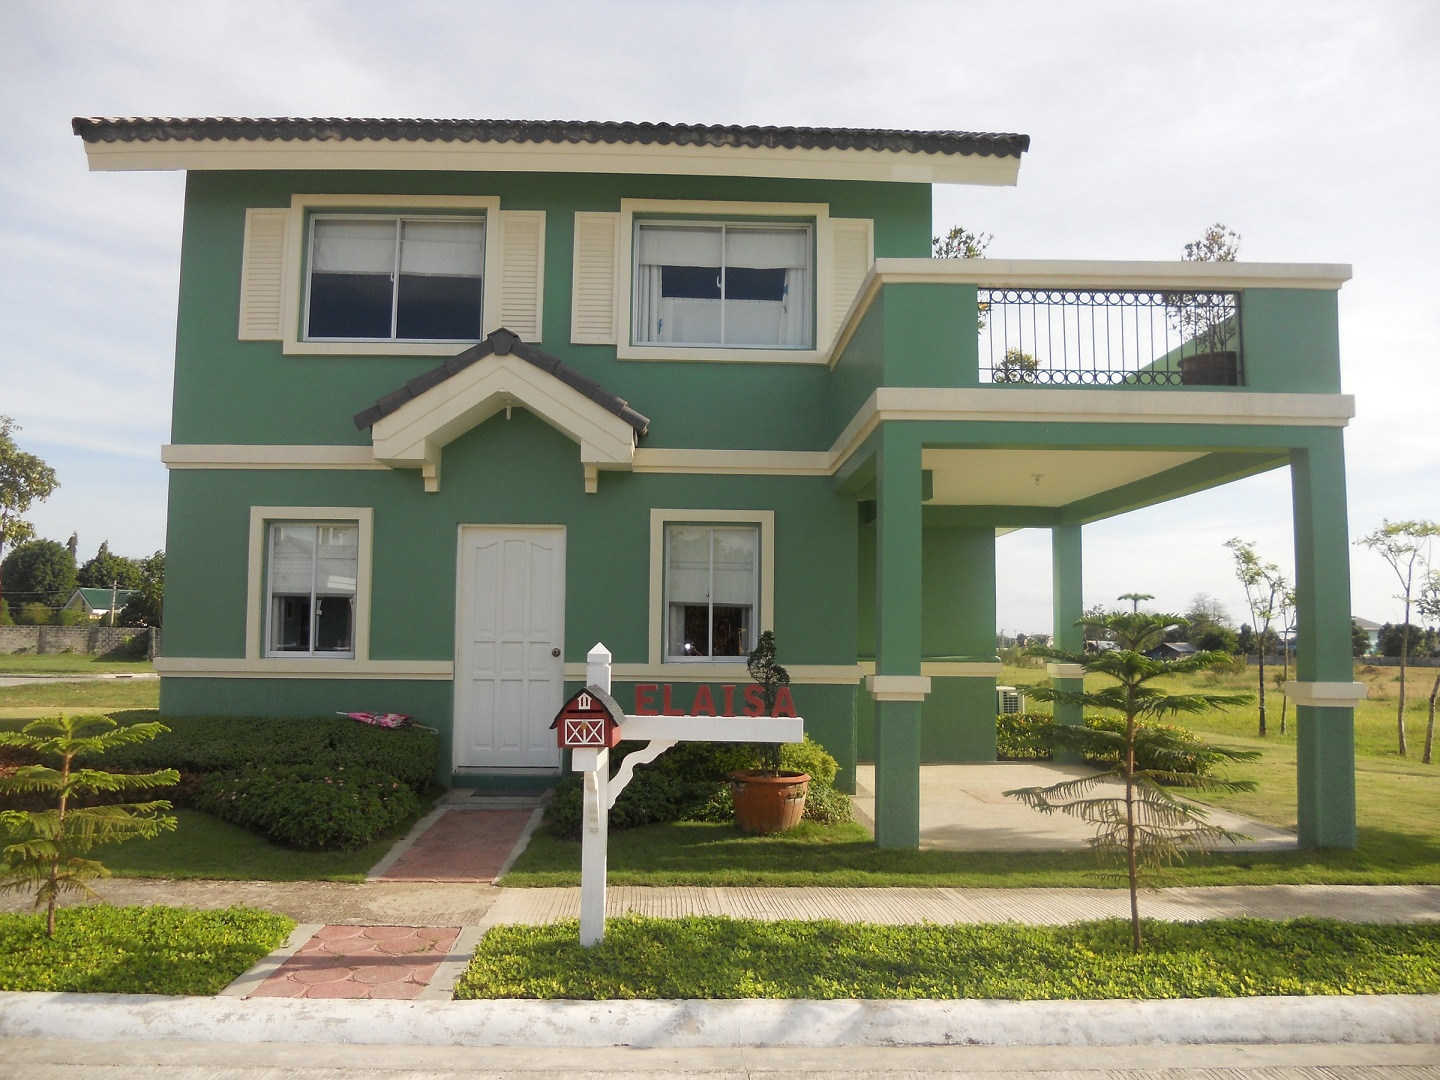 Savannah glades iloilo within savannah iloilo by camella for Savannah style house plans